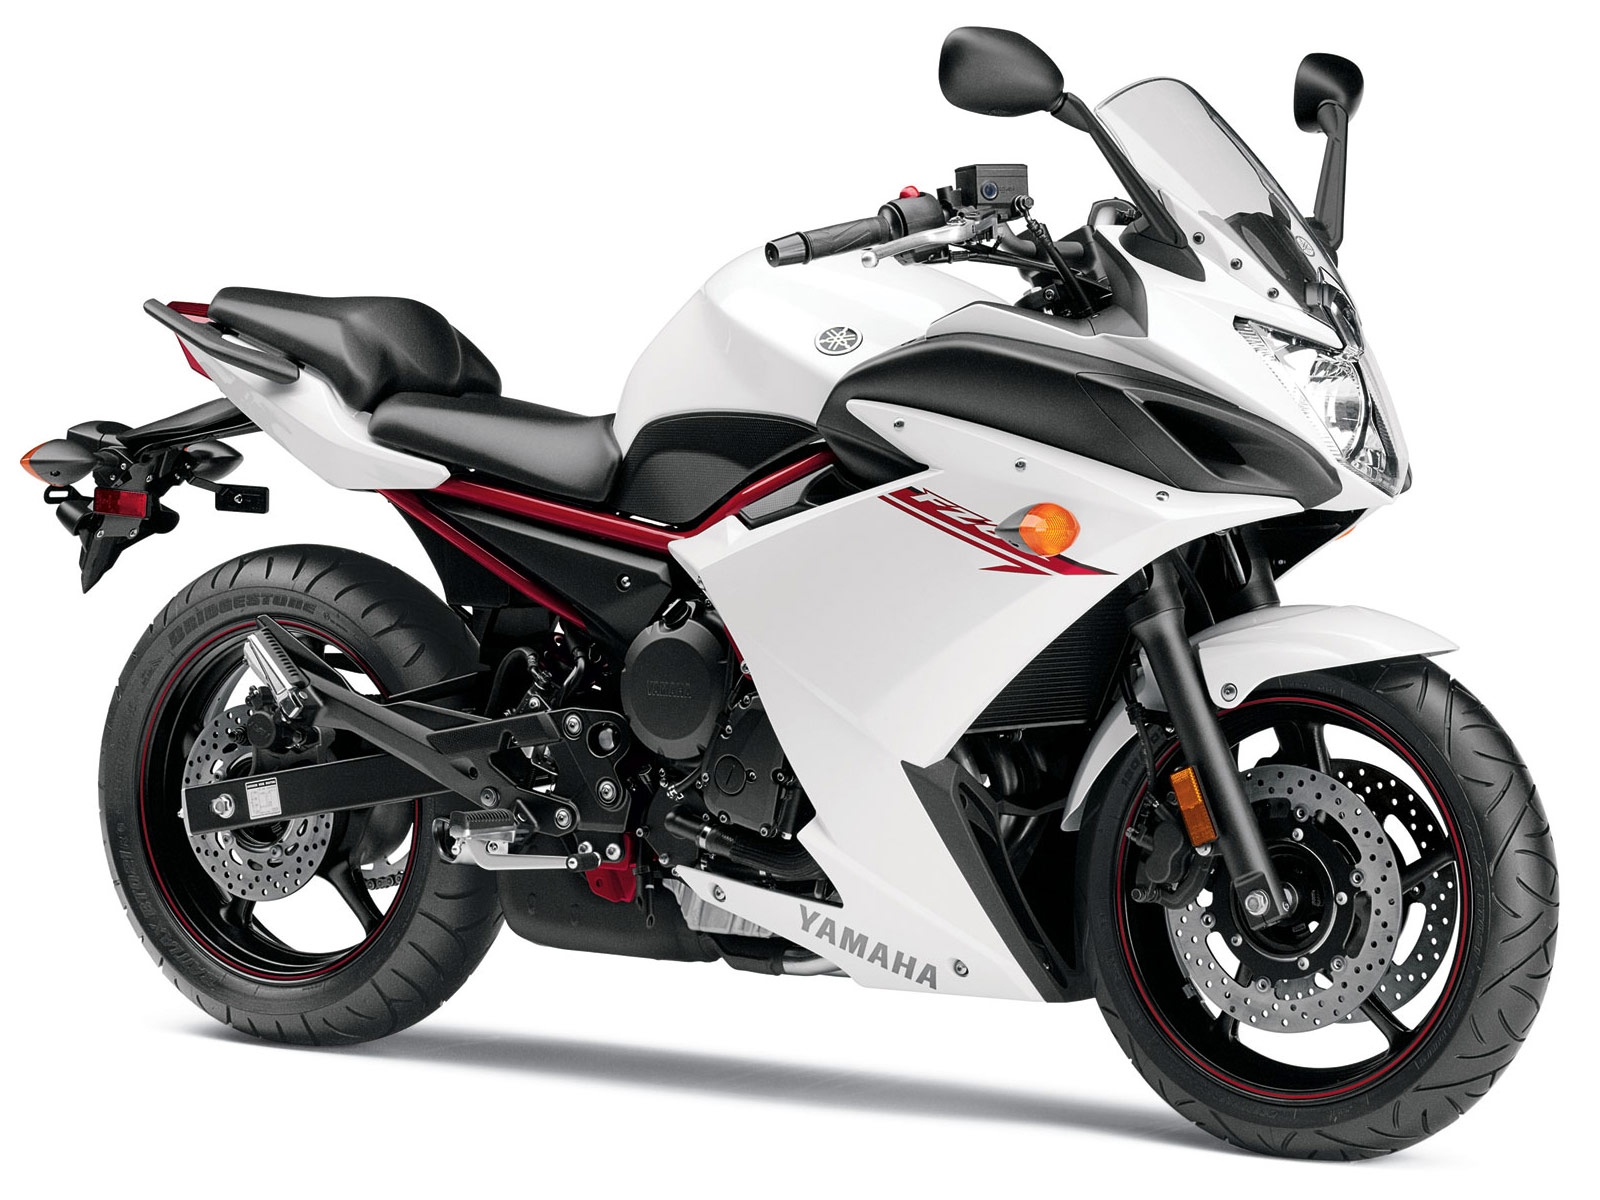 2013 Yamaha FZ6R motorcycle. USA, Canadian Specifications, pictures.